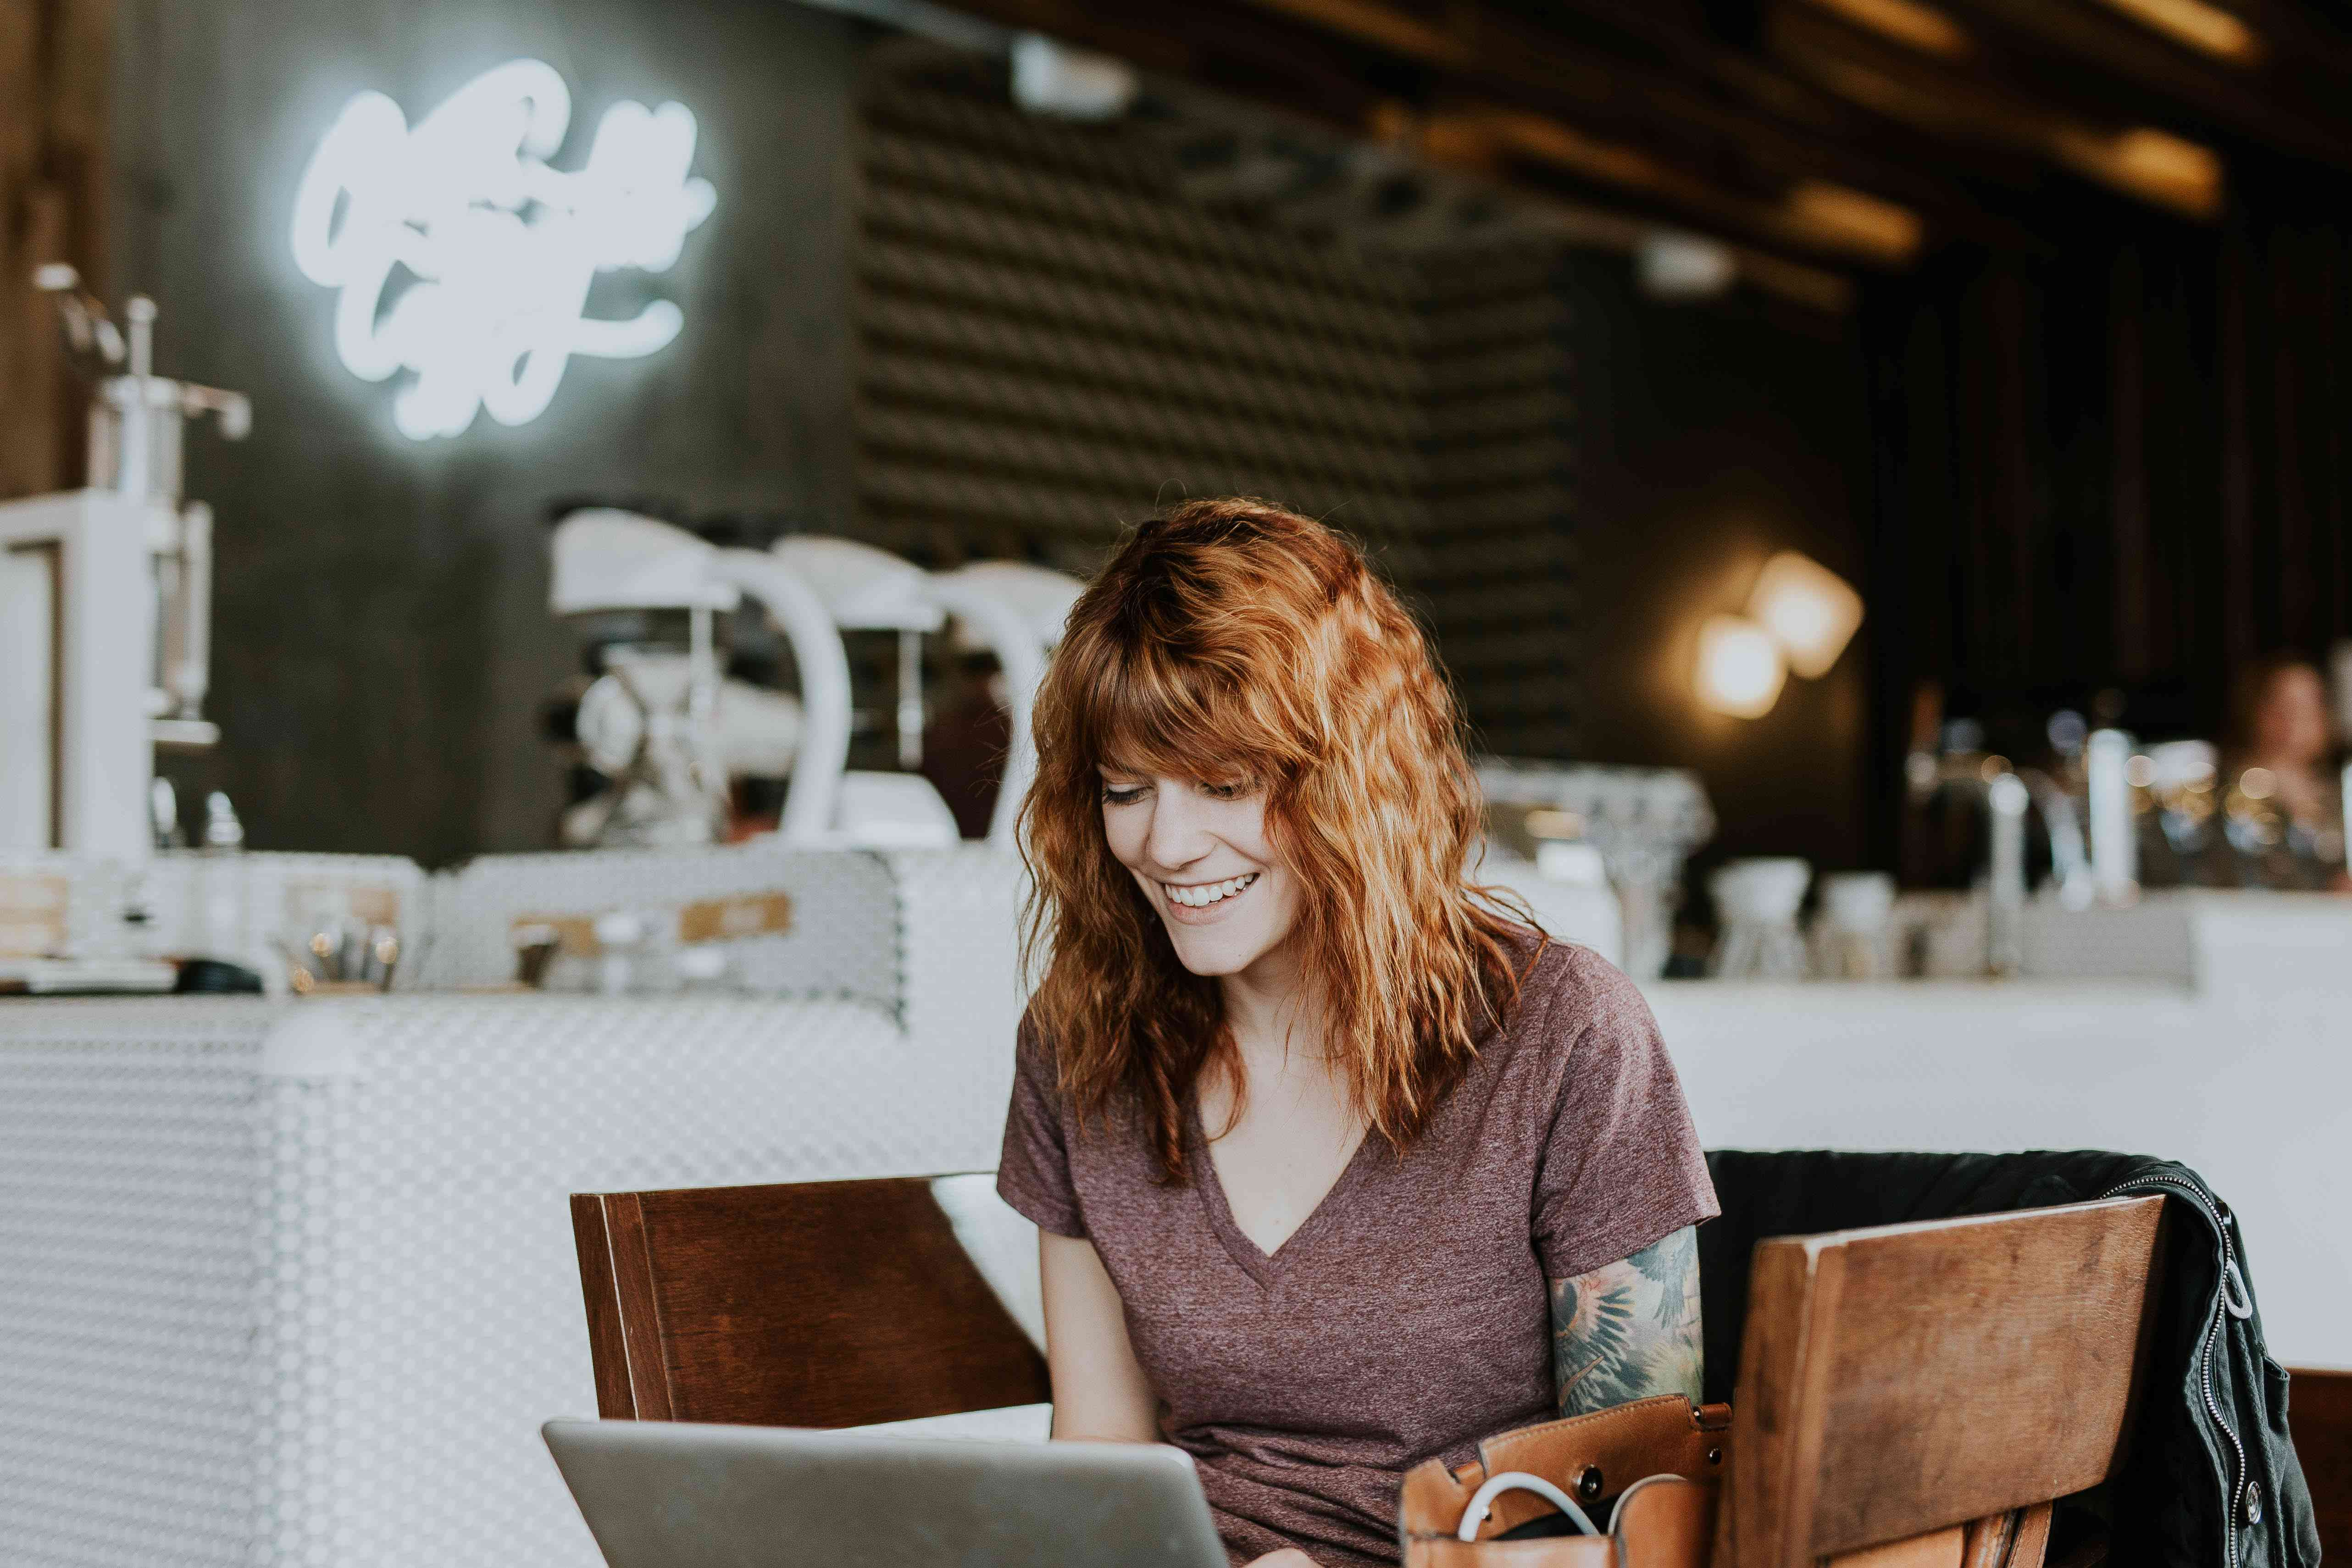 A red-haired smiling woman working on her laptop in a cafe.